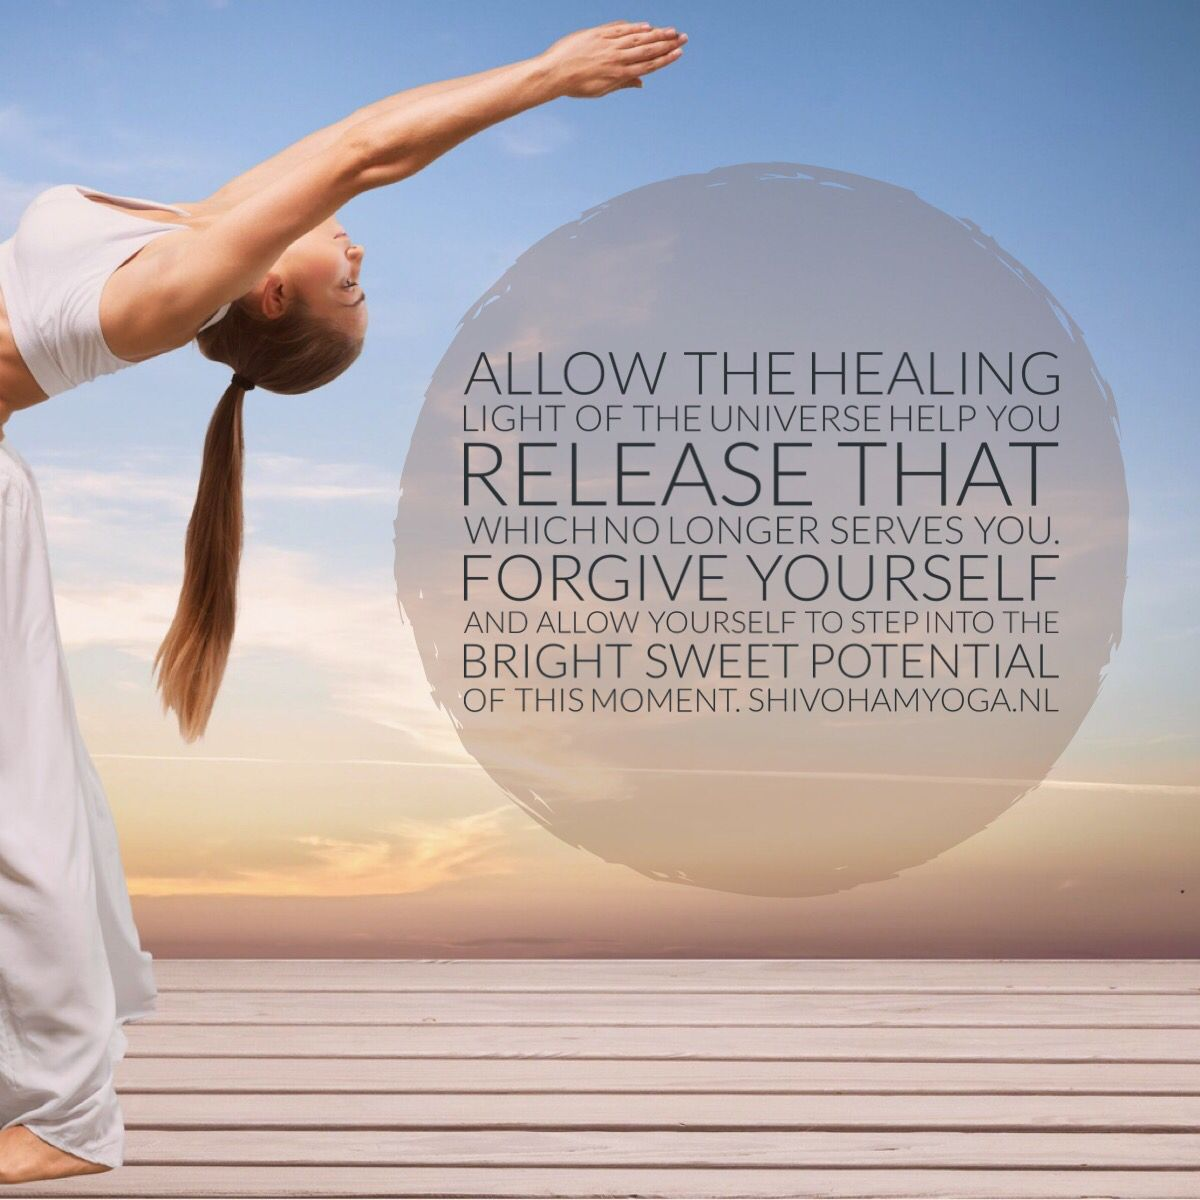 Allow the healing light of the Universe help you release that which no longer serves you. Forgive yourself and allow yourself to step into the bright sweet potential of this moment ♡ http://www.shivohamyoga.nl/ #inspiration #indigo #quotes #zen #love #yoga #wisdom #ShivohamYoga #namaste #om #instagood #me #esoteric  #cute #like #photooftheday #angels #happy #beautiful #girl #picoftheday #instadaily #smile #friends #spirituality #vegan #esoteric #pursuitofhappiness #soul #energy ॐ